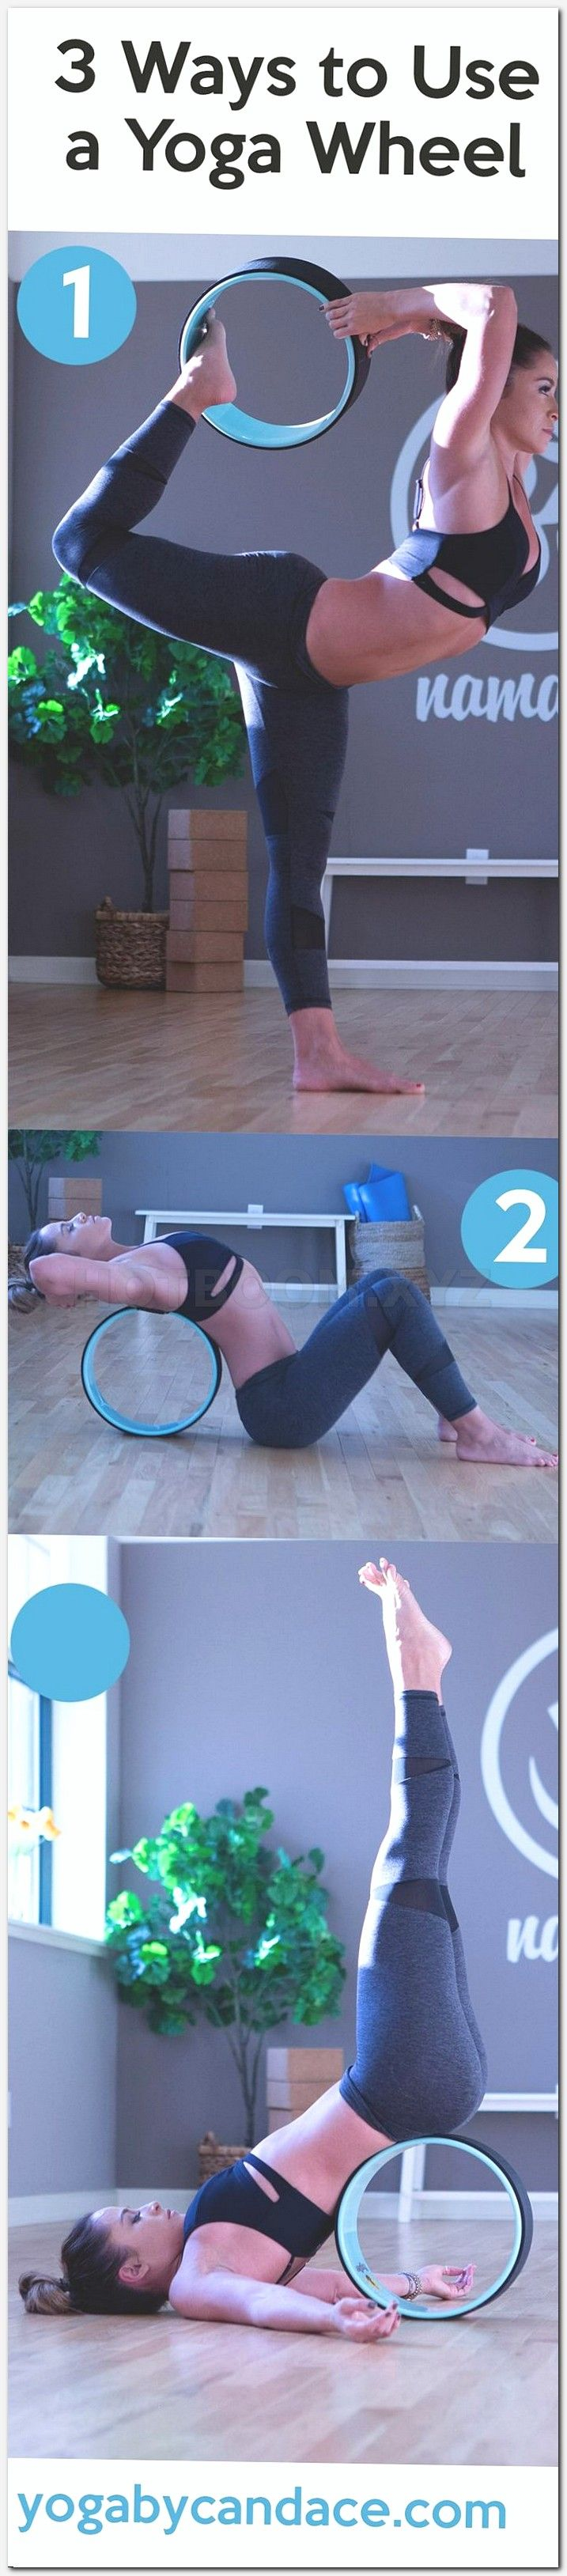 25+ best ideas about Yoga poses chart on Pinterest | Yoga ...